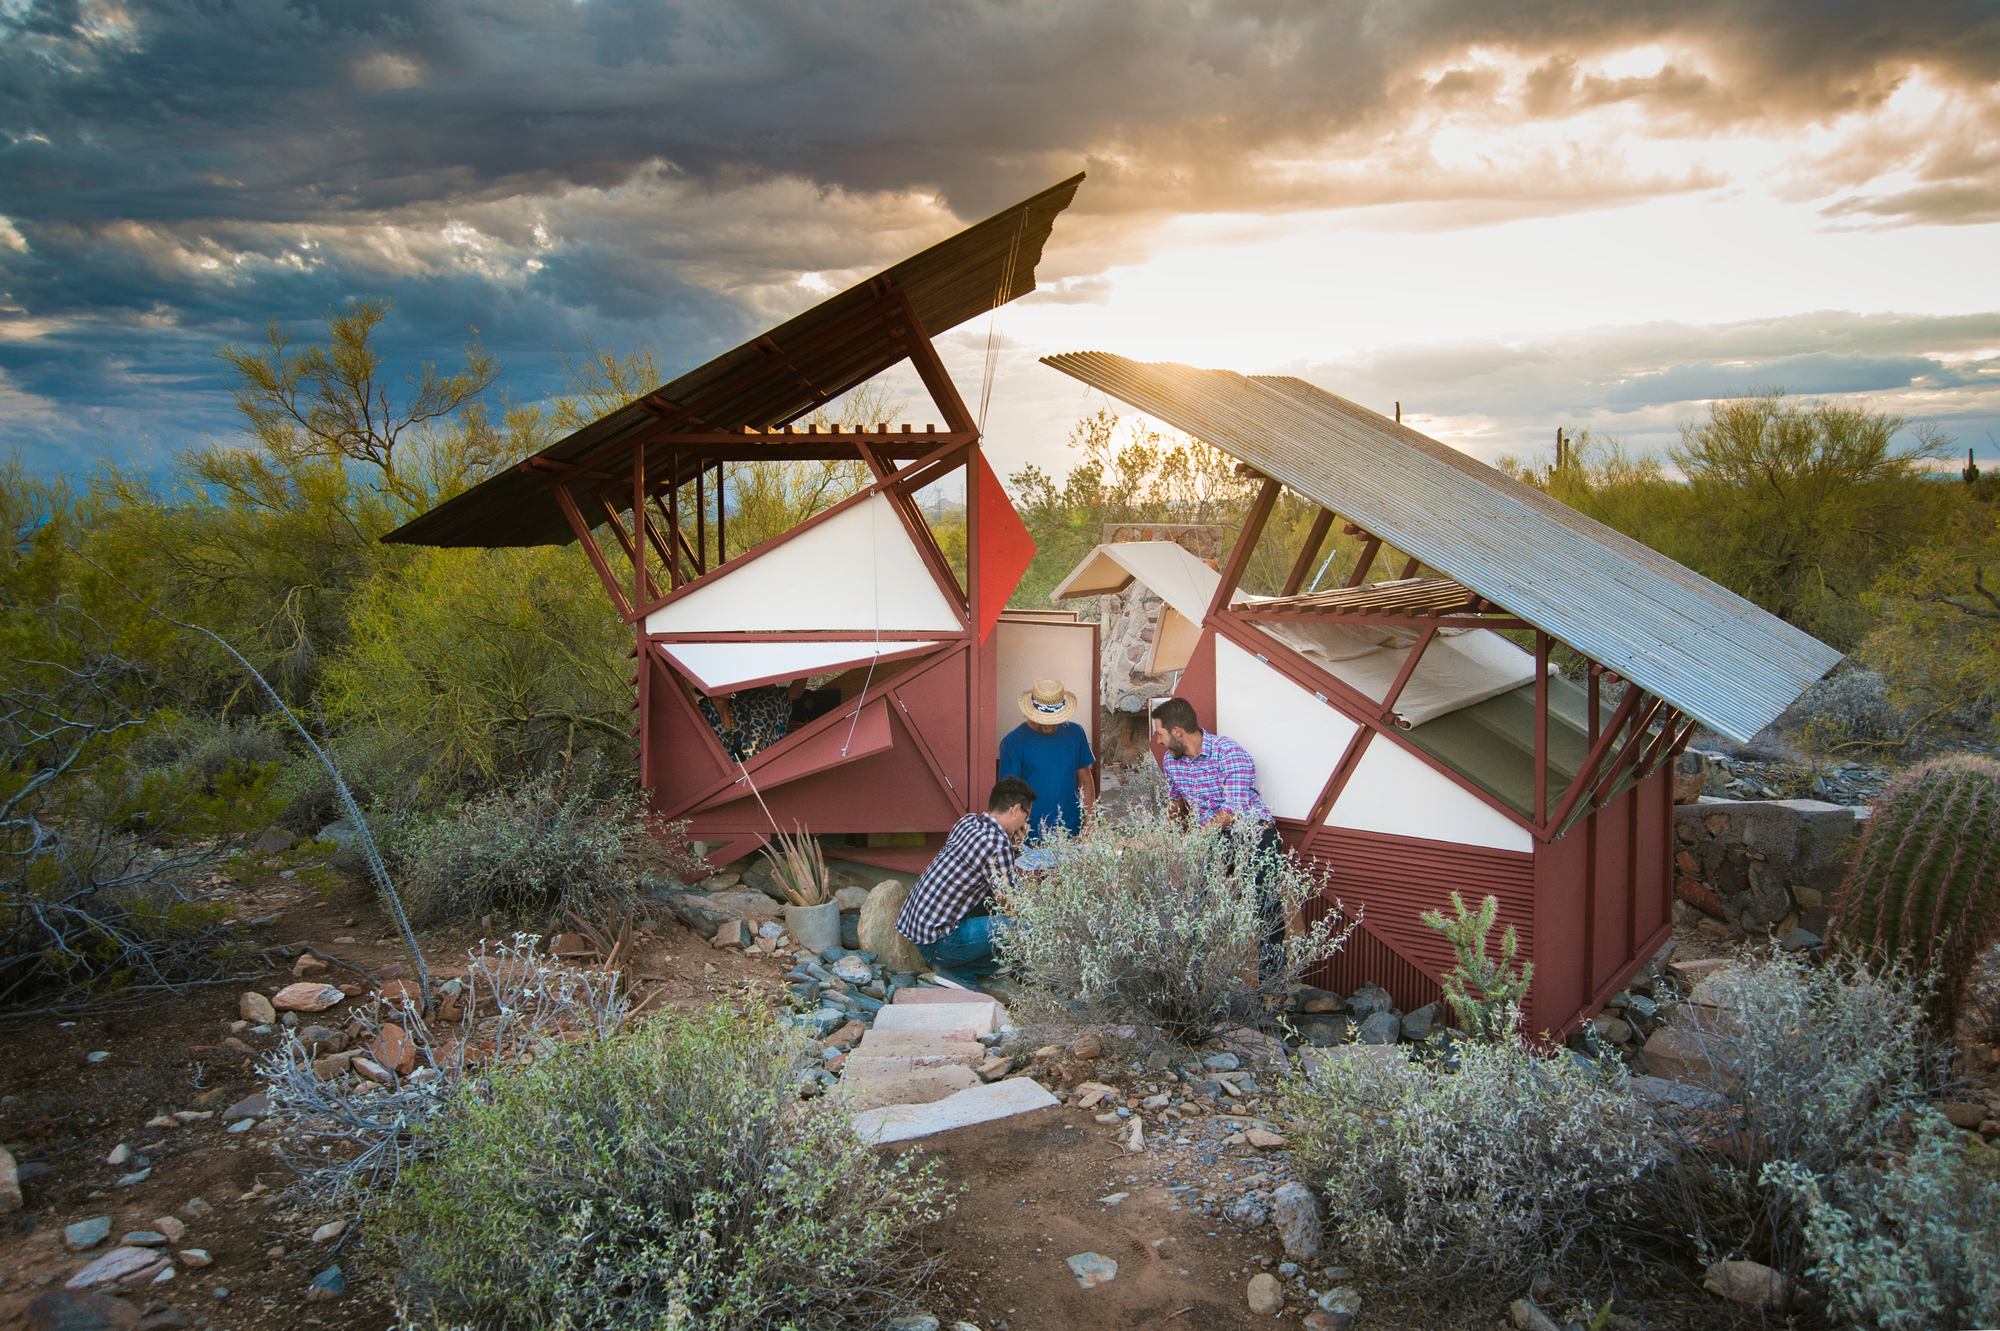 Architecture Students From Taliesin West Learn Survival